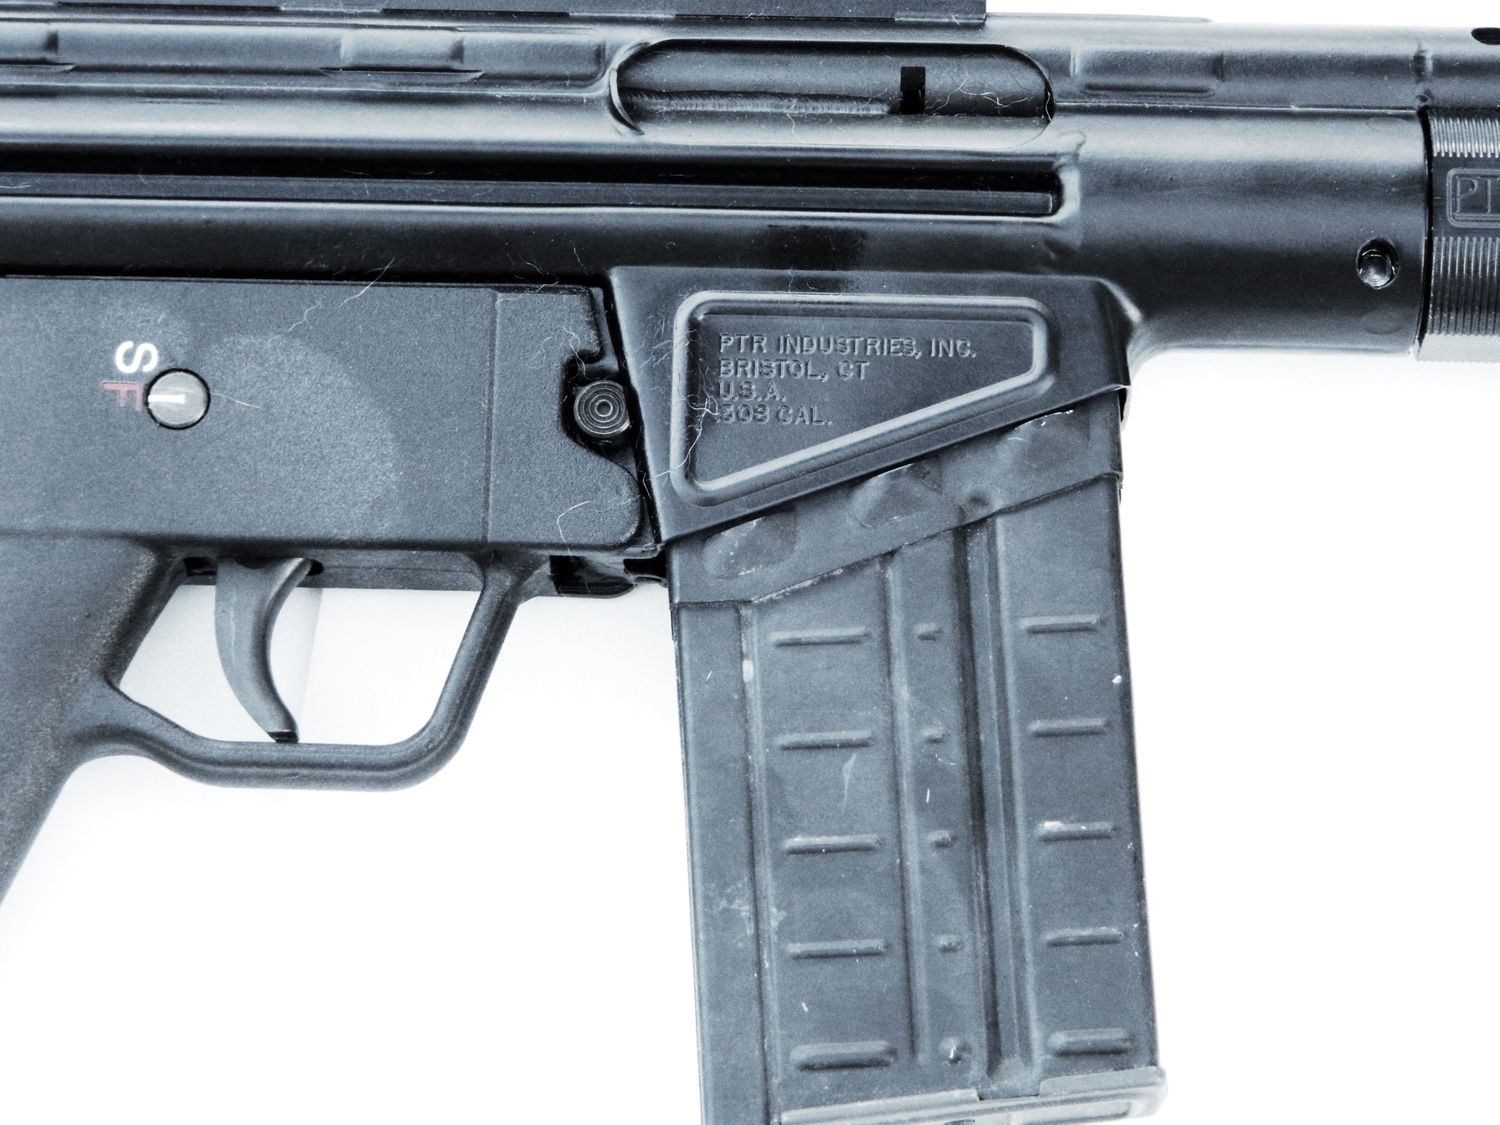 Magazine release on the PTR 91 rifle